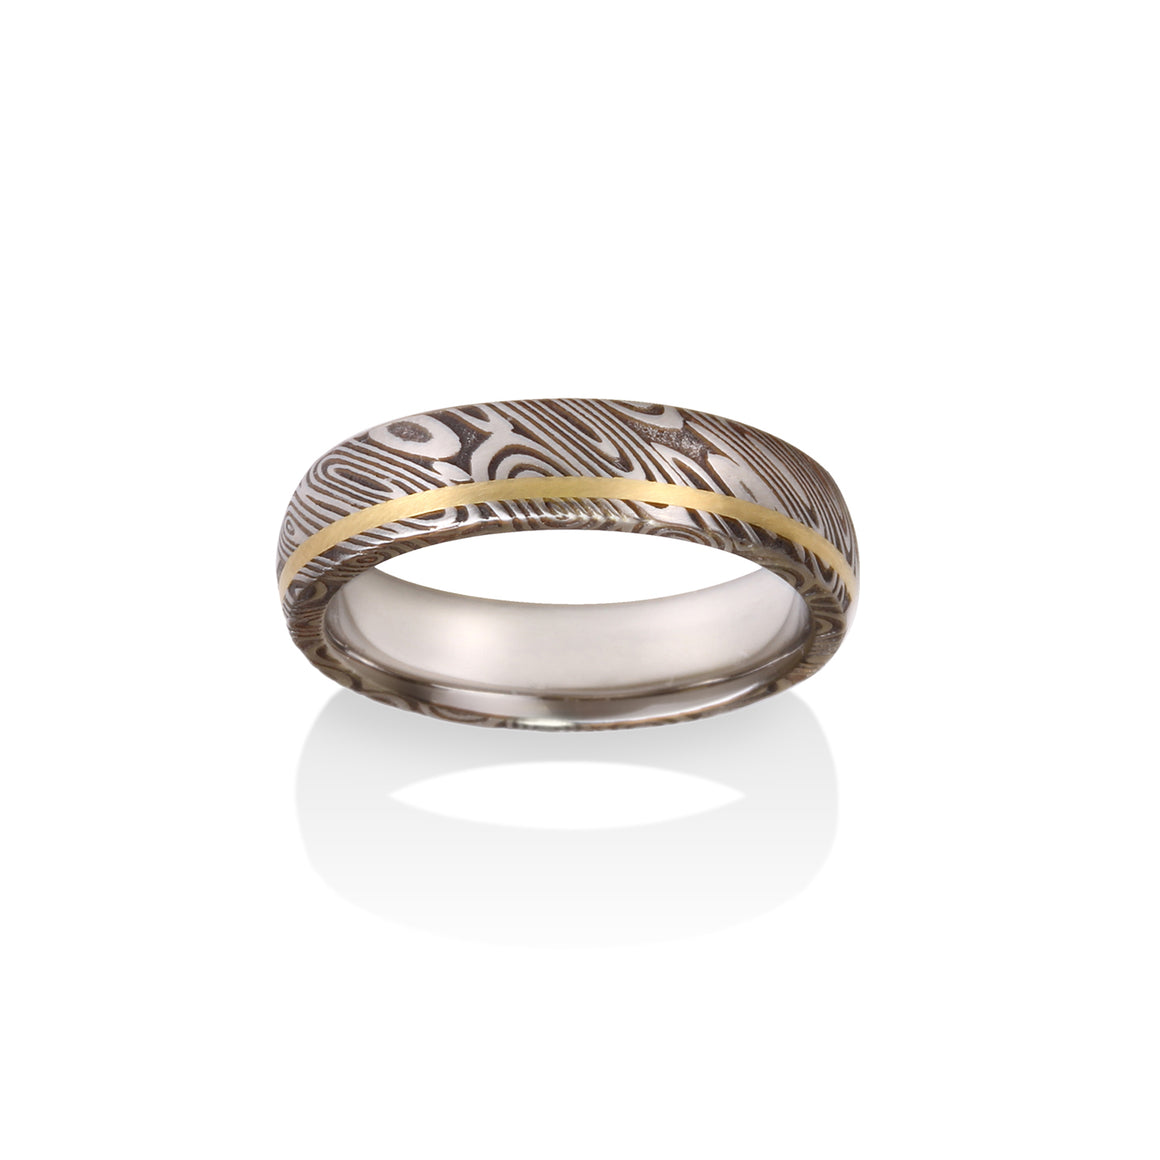 Wood Grain Damascus Steel Ring by Chris Ploof - 18k Yellow Gold Inlay - Talisman Collection Fine Jewelers